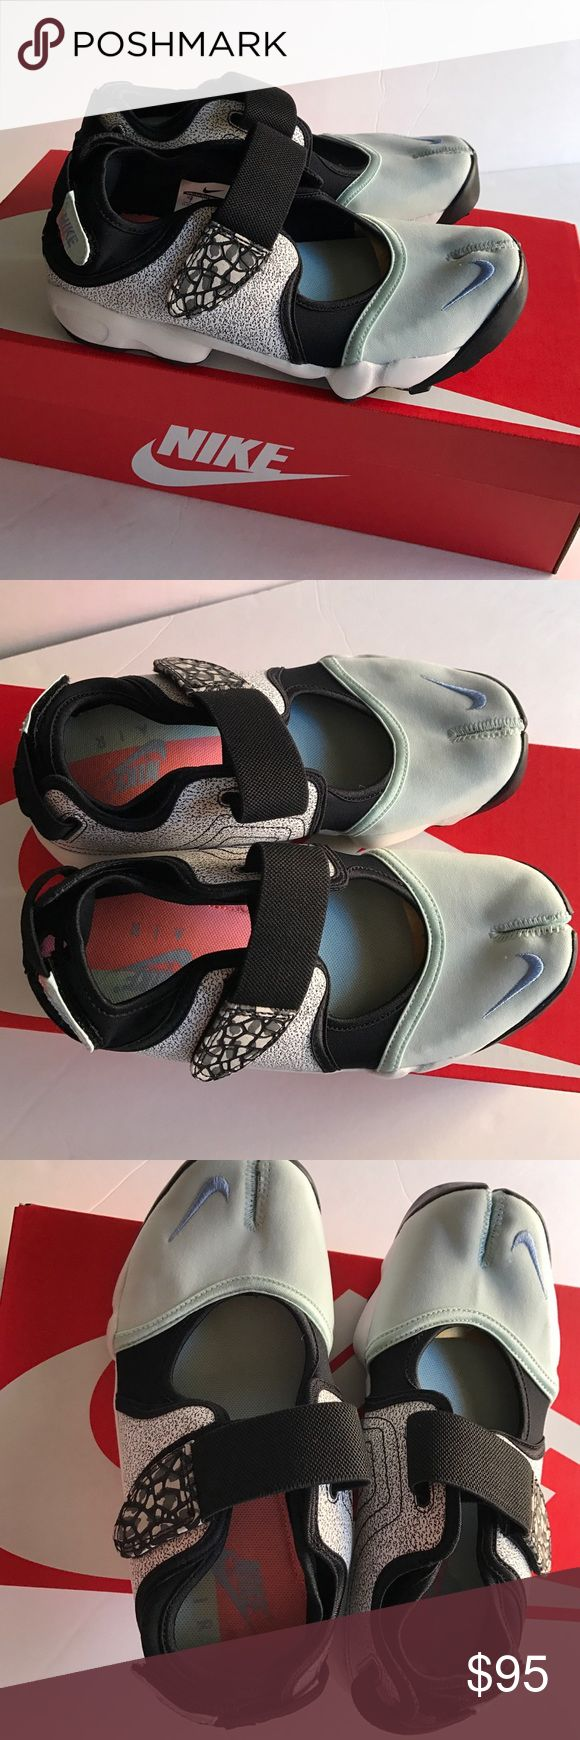 New Nike Air Rift shoes sz 7 Brand new in box Nike Air Rift women's shoes size 7 Velcro closure green/ black color:) Nike Shoes Athletic Shoes